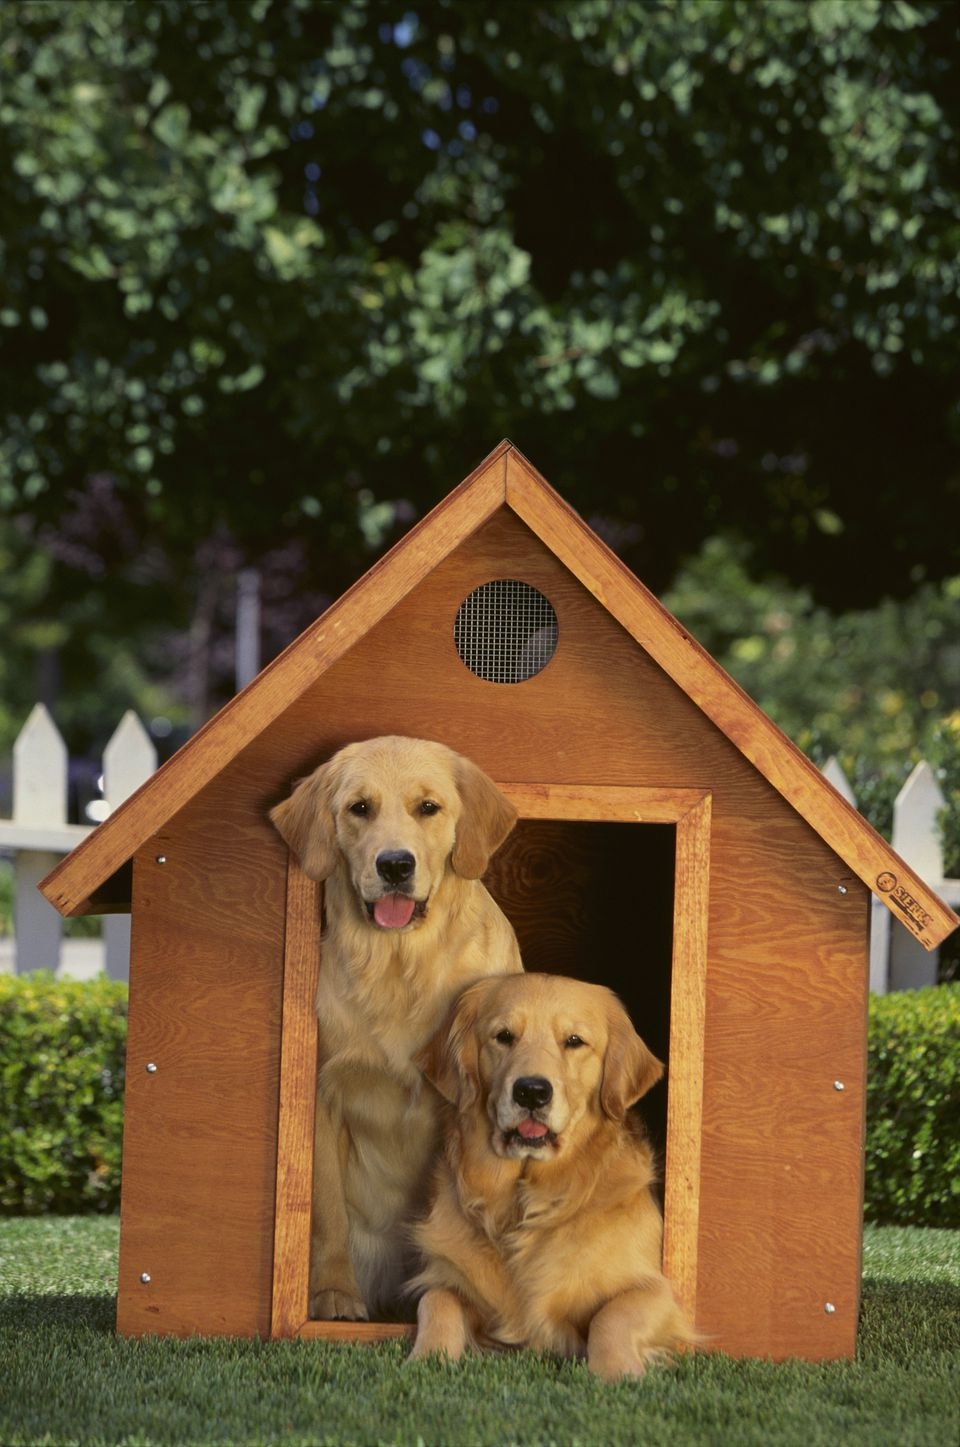 Two Golden Retrievers In a Wooden Dog House Looking at Camera